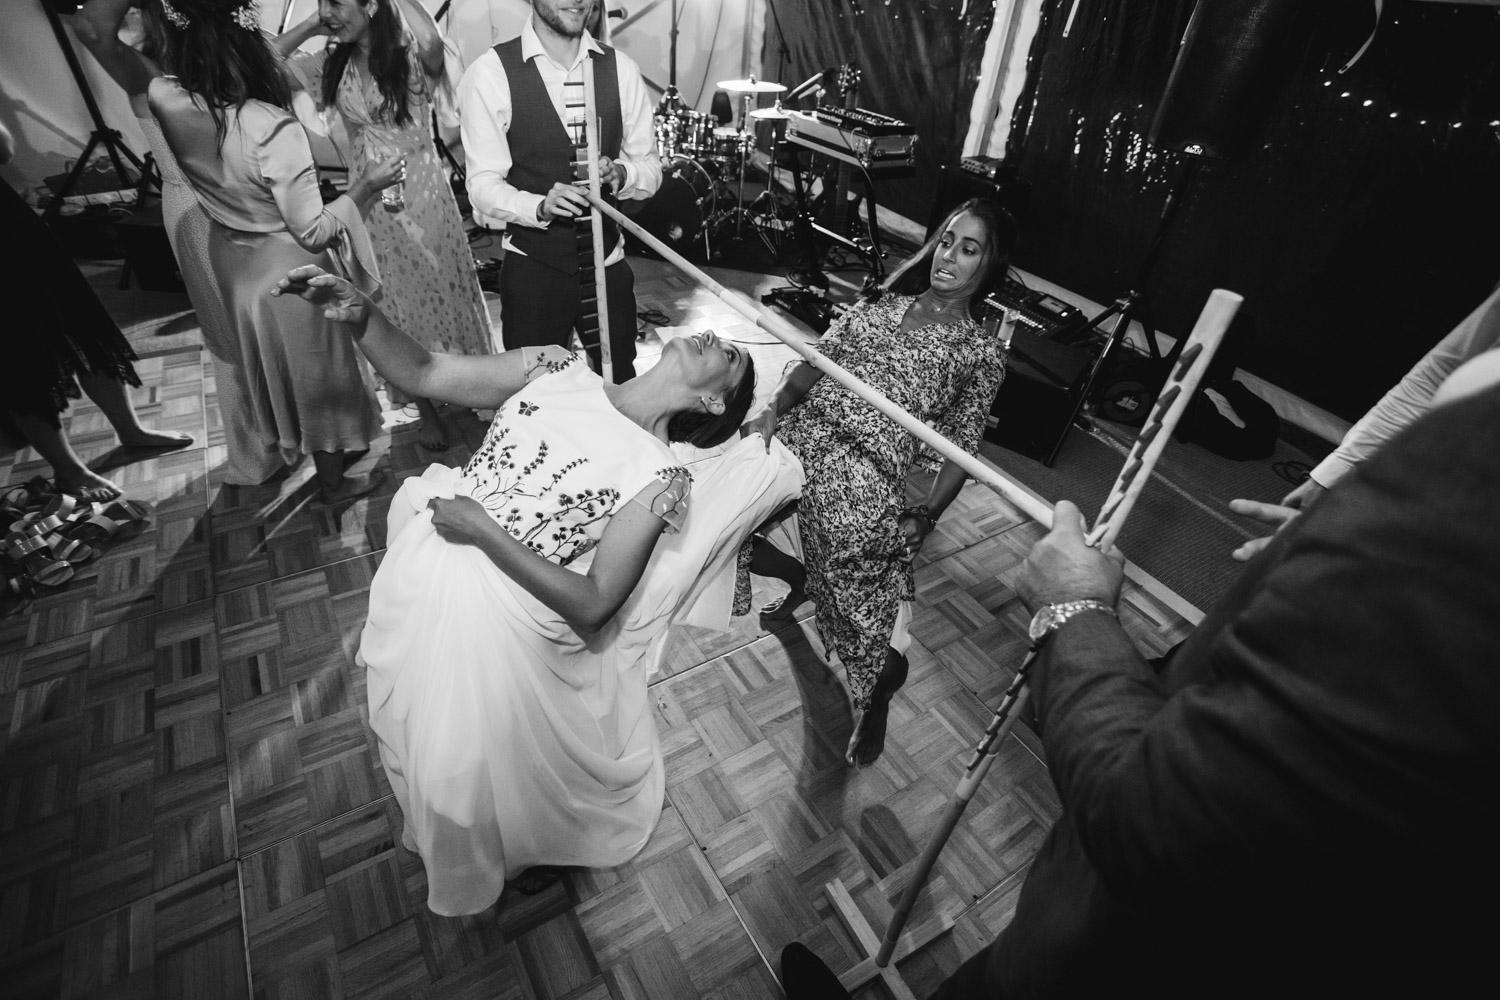 the bride playing limbo on the dancefloor